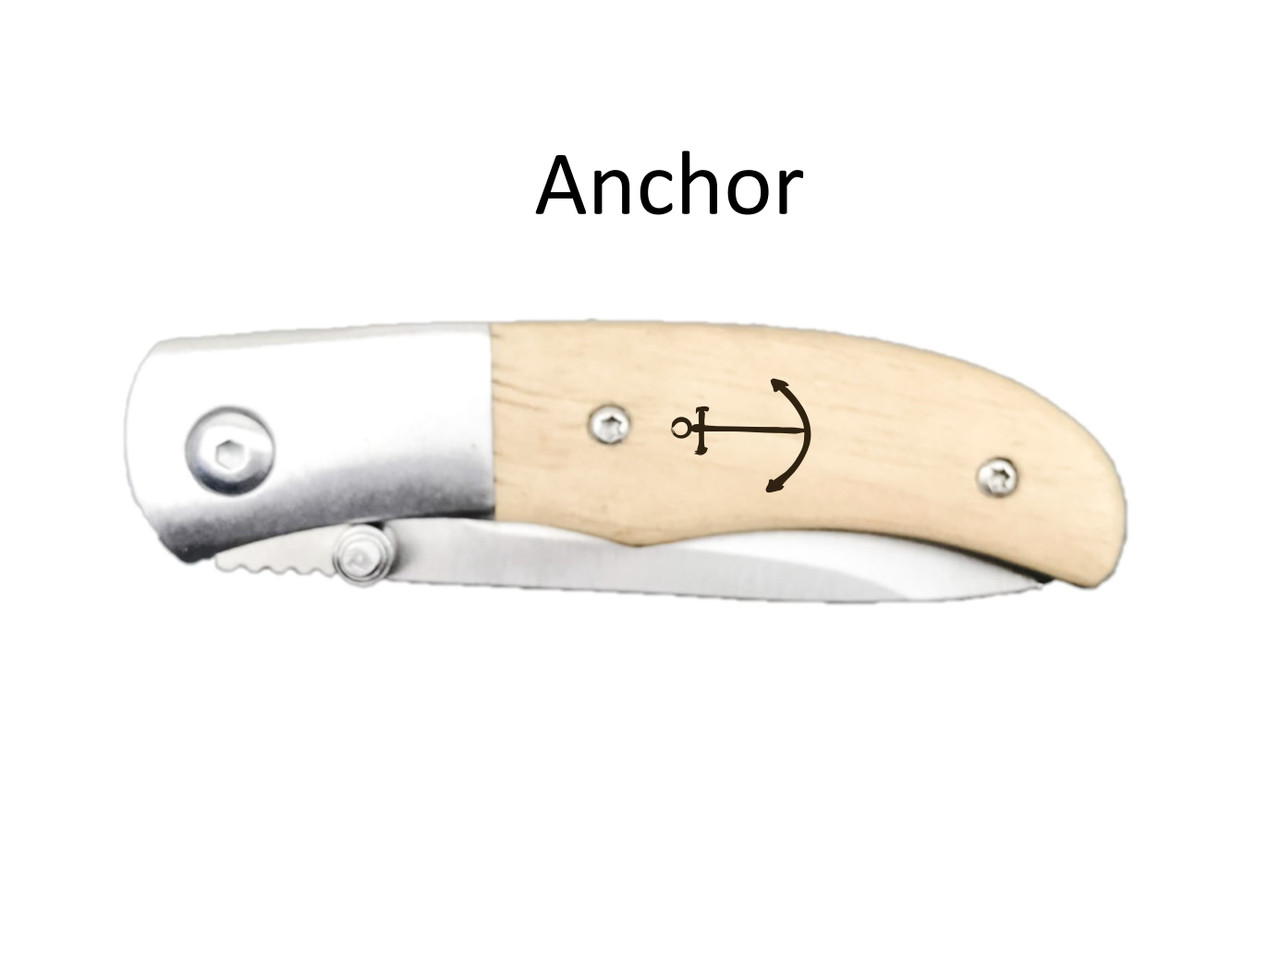 Classic Small Pocket Knife – Choose Your Design – Optional Custom Engraving - Anchor